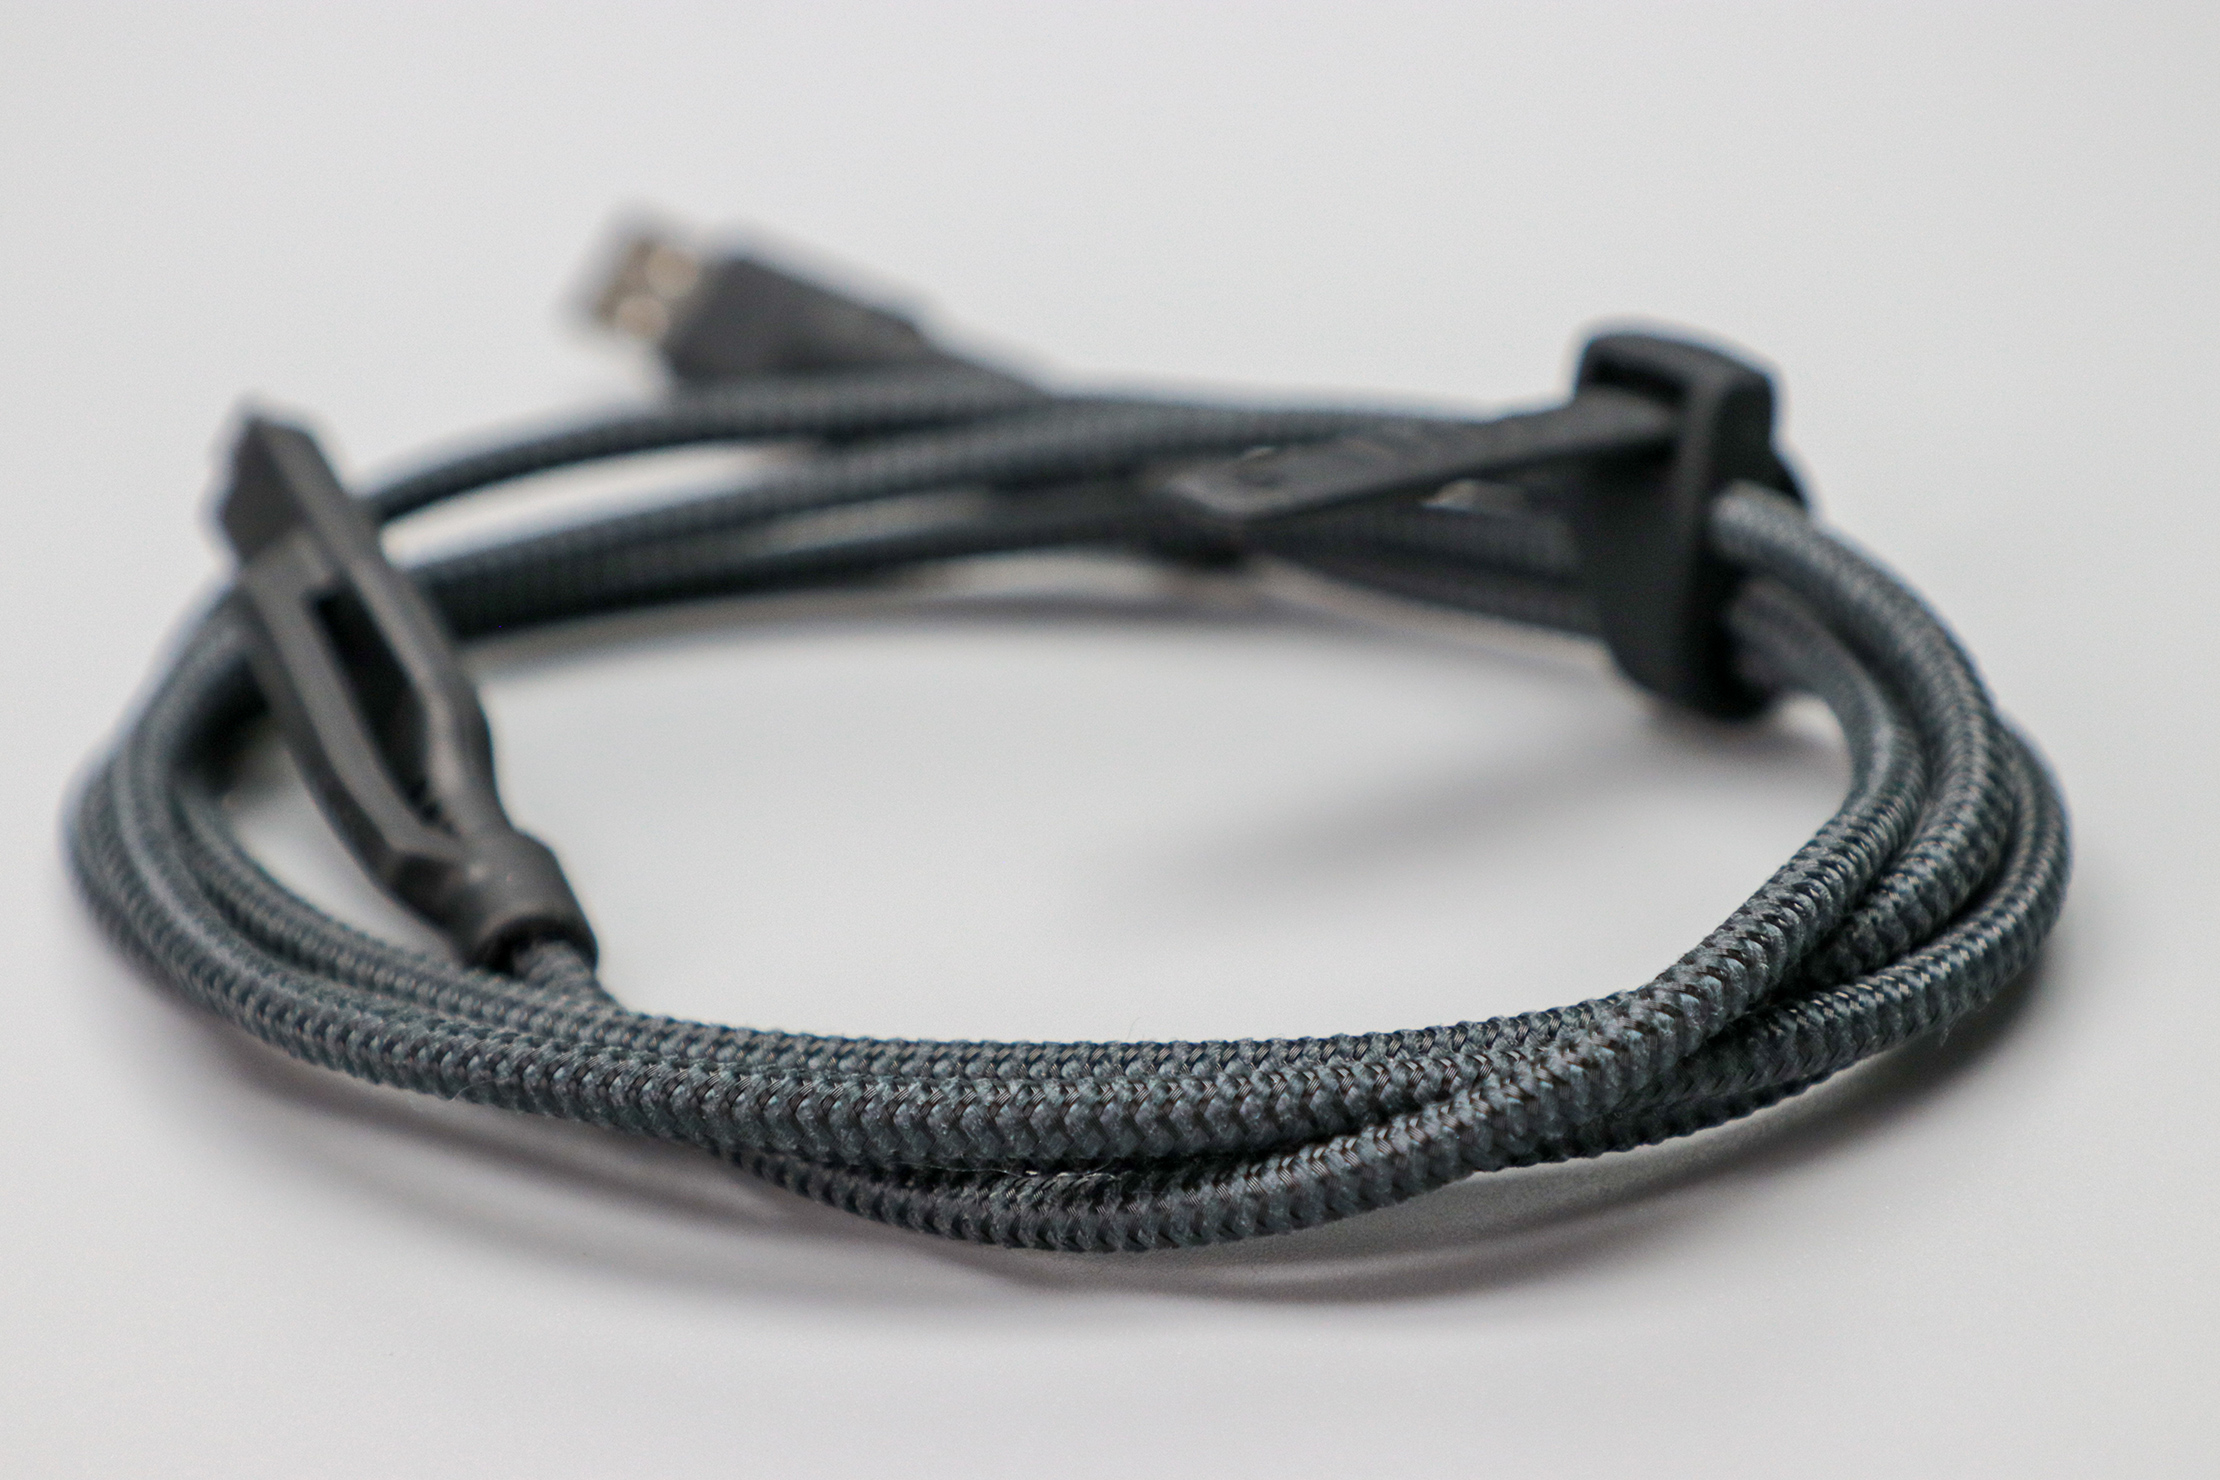 Nomad Goods Universal USB-C Cable braided cord